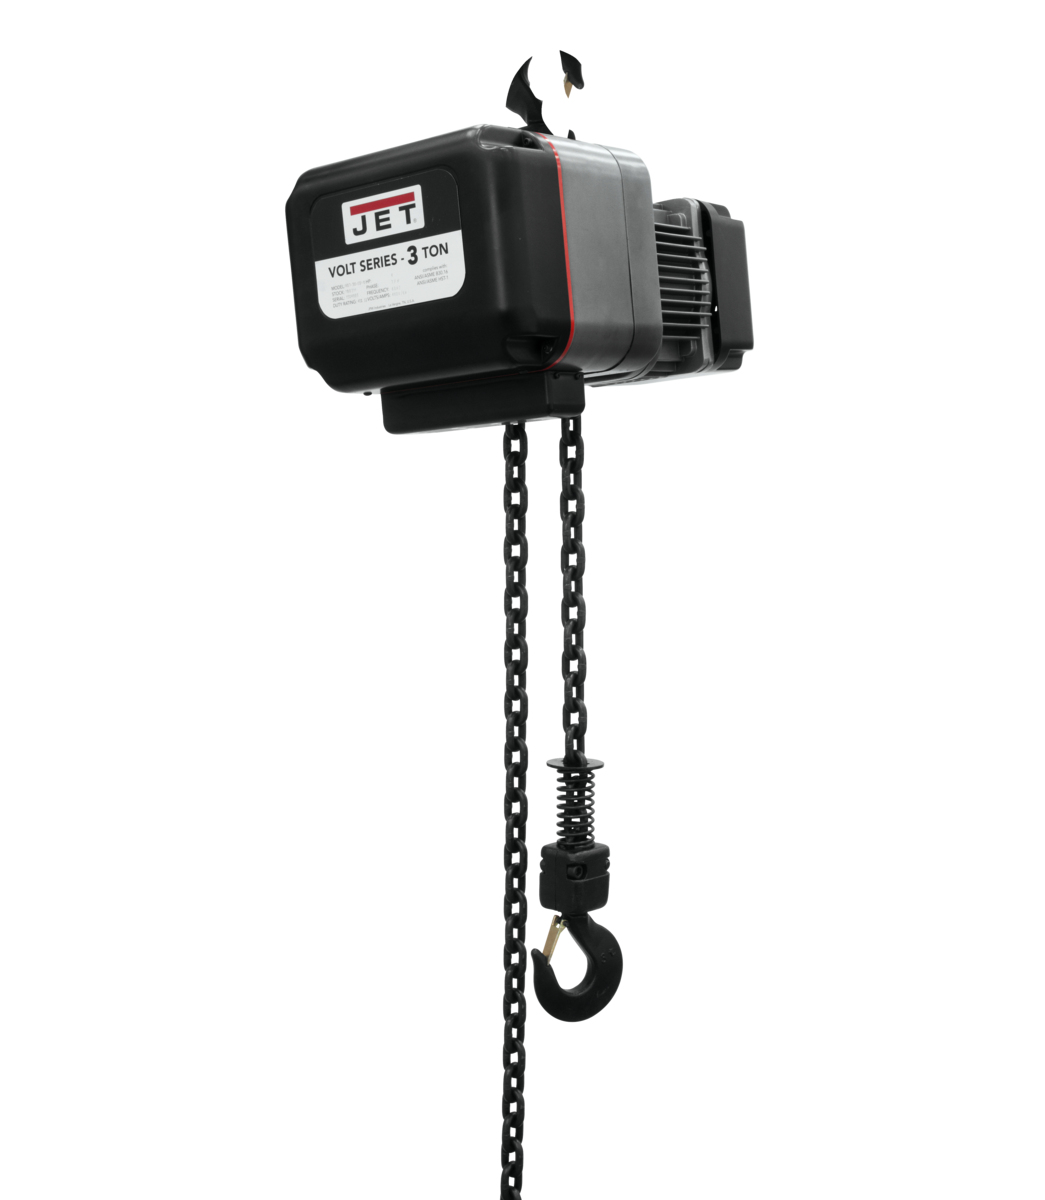 VOLT 3T VARIABLE-SPEED ELECTRIC HOIST 3PH 460V 20' LIFT